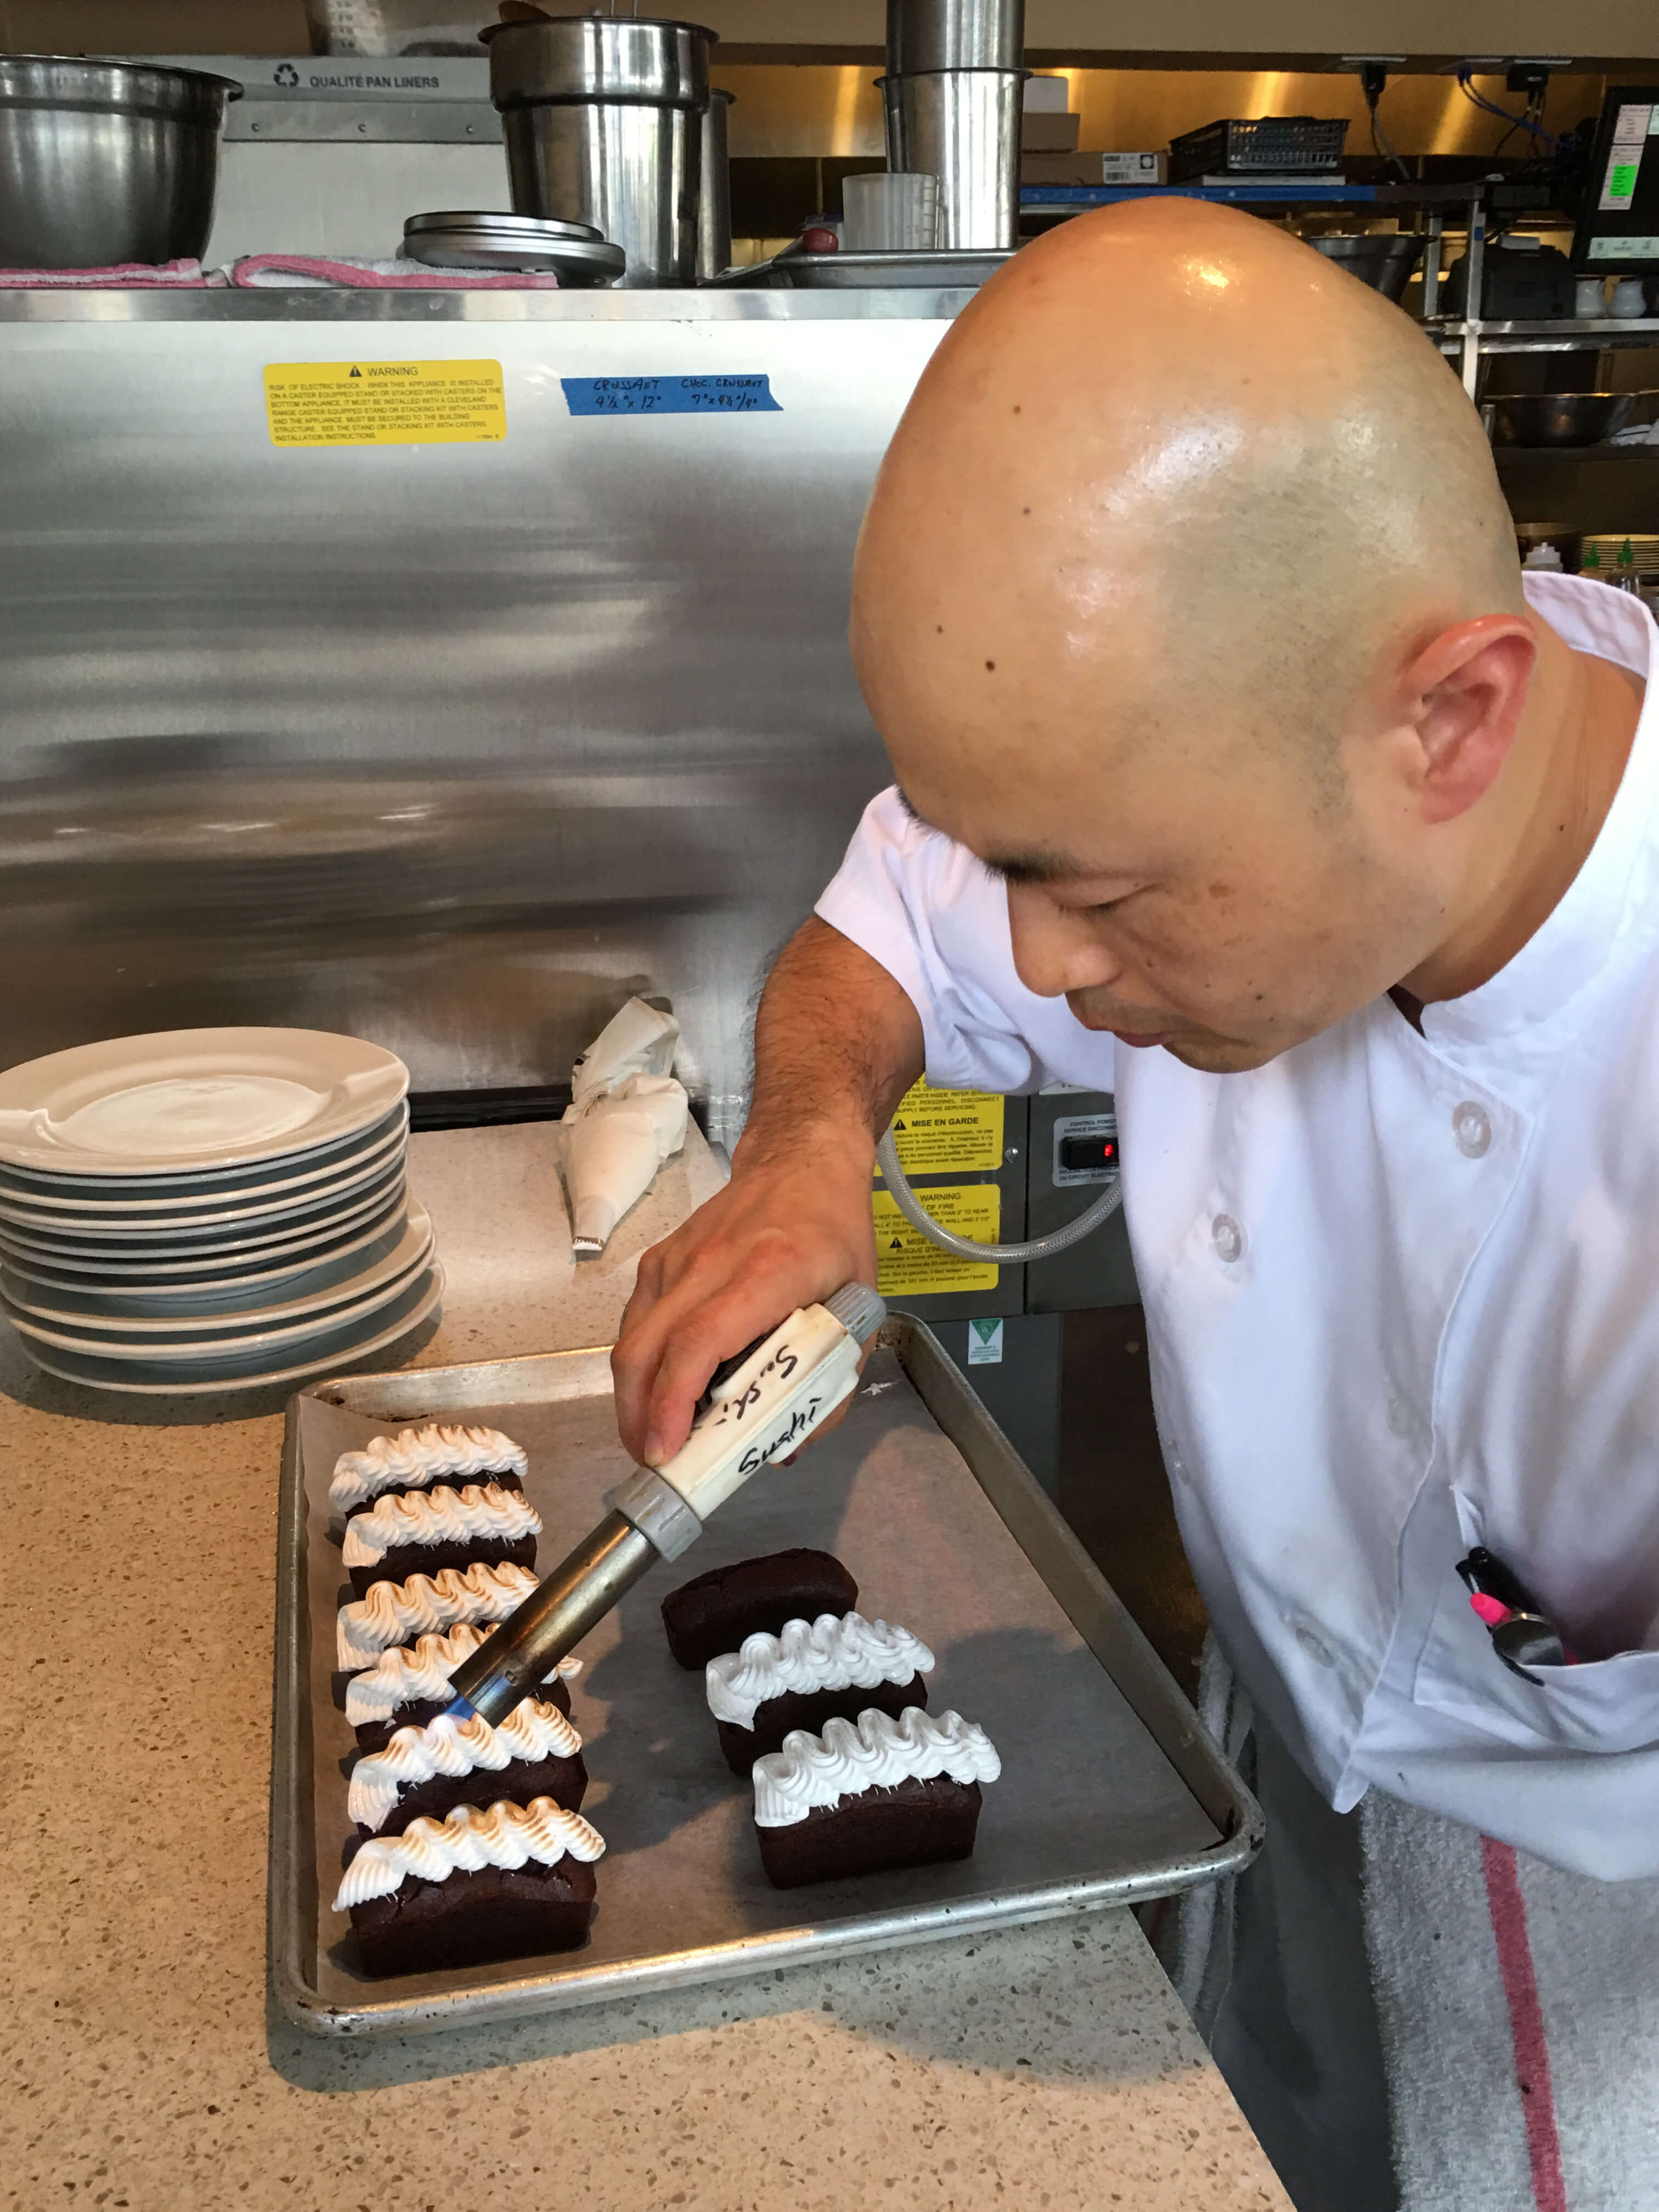 Chef Jason Park puts the finishing touches on dessert.